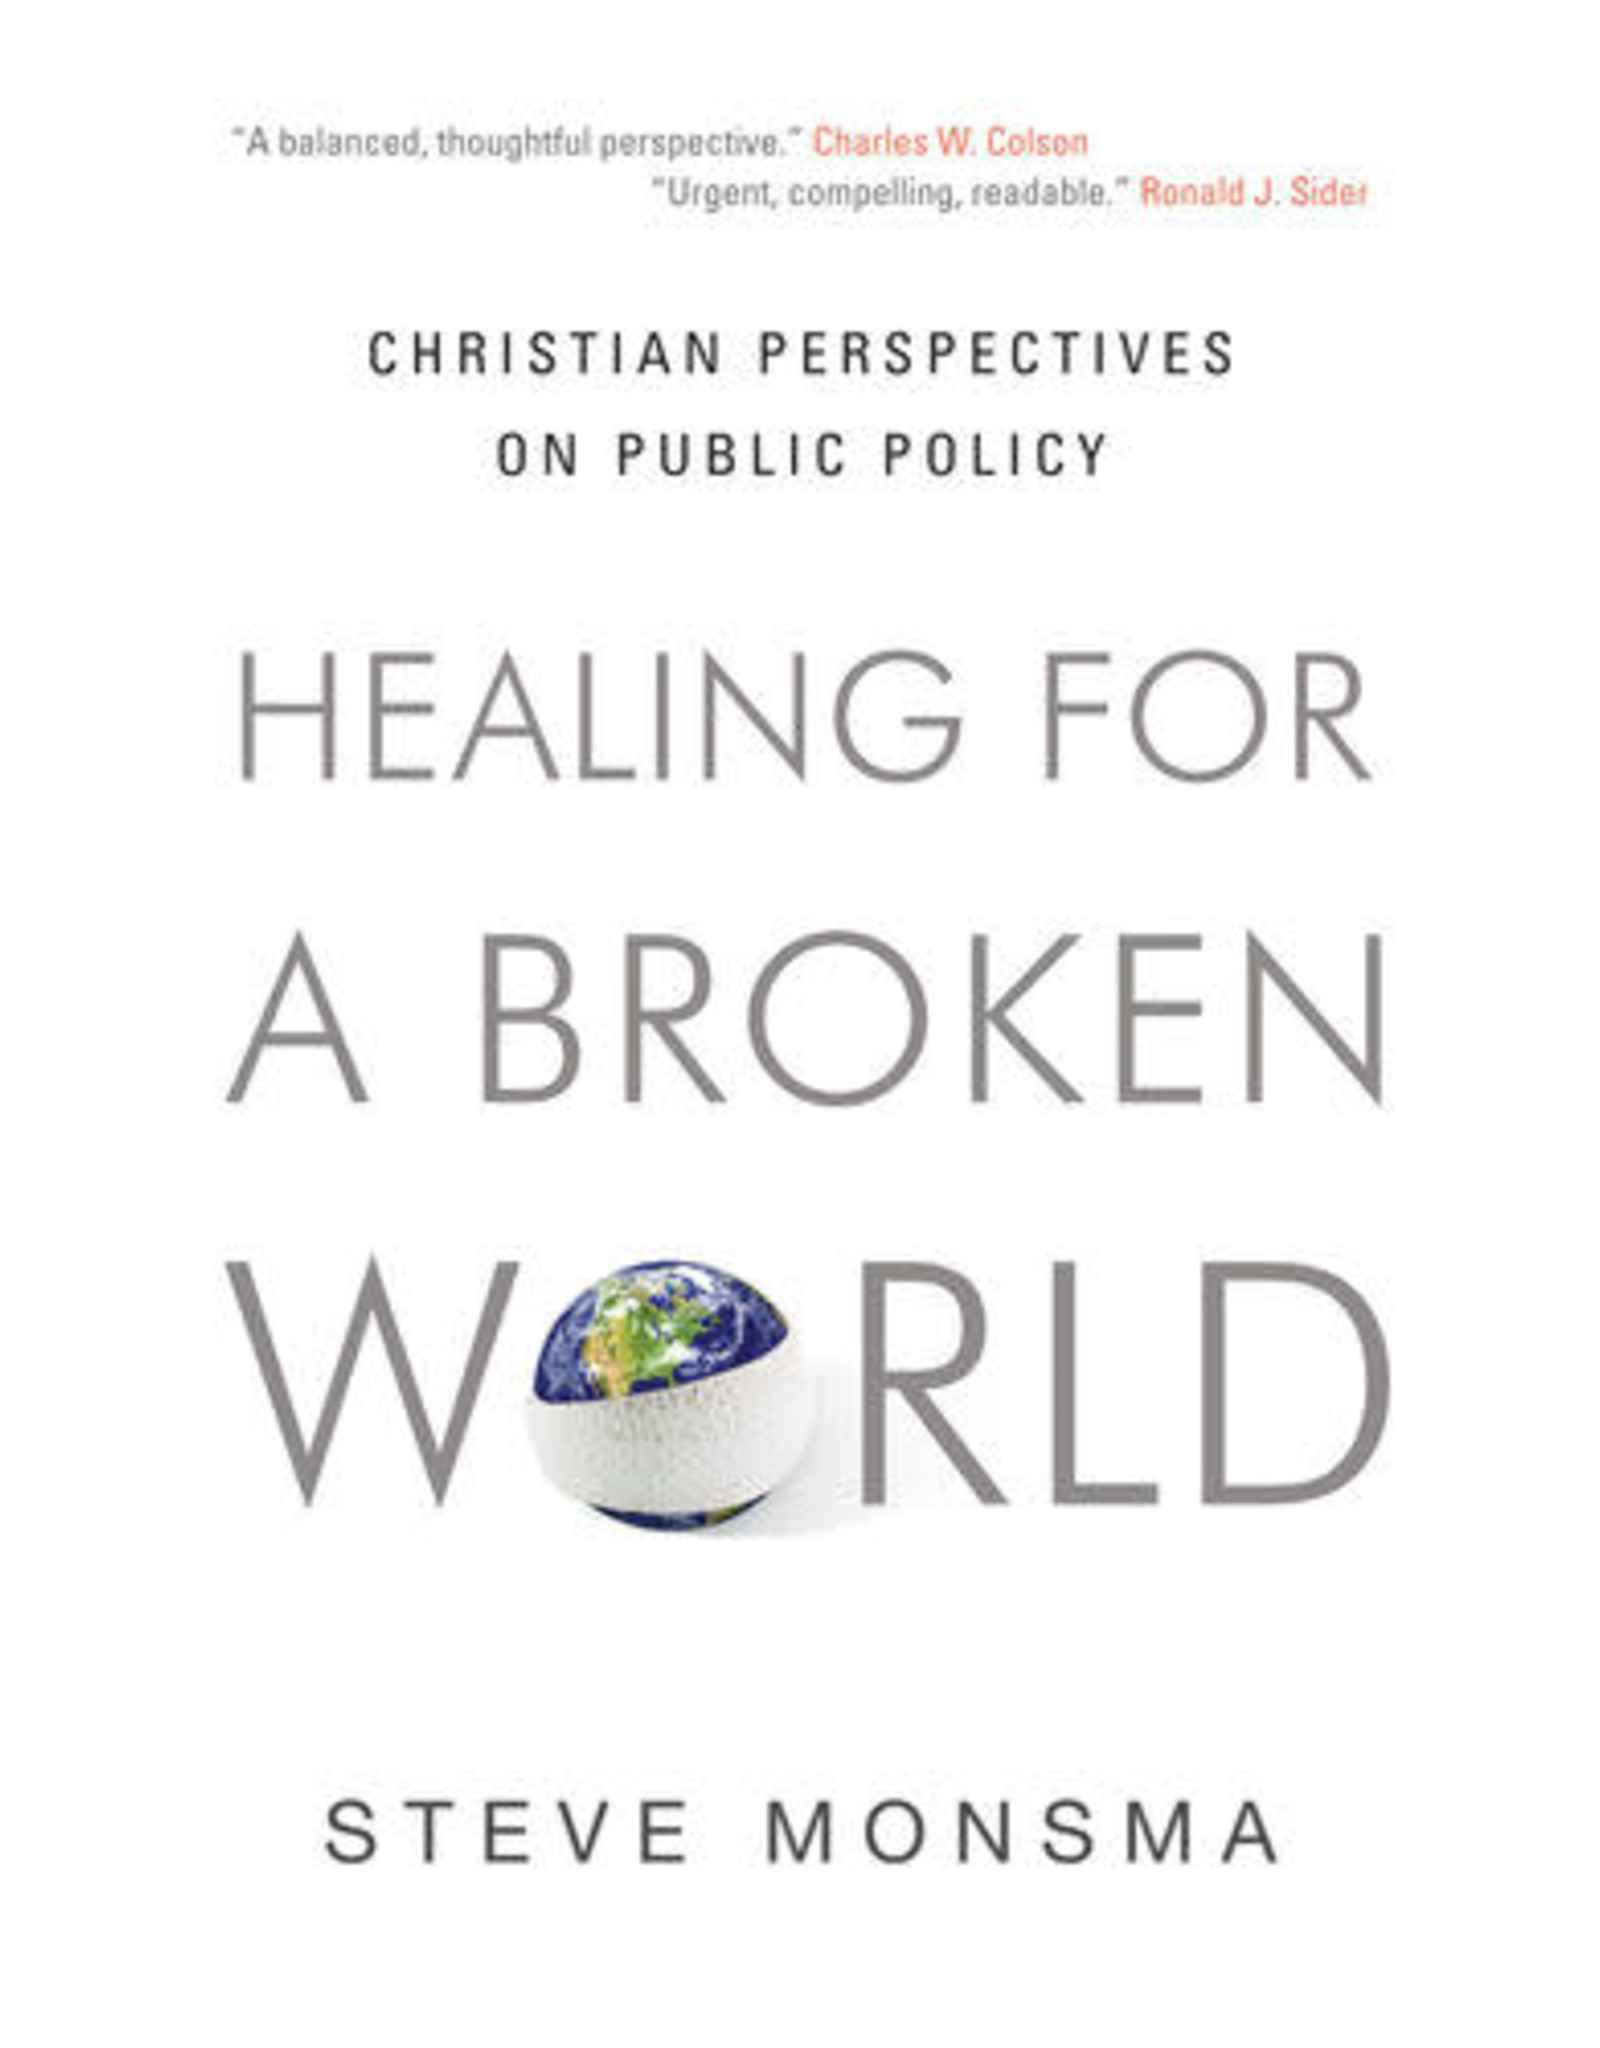 Monsma Healing for a Broken World